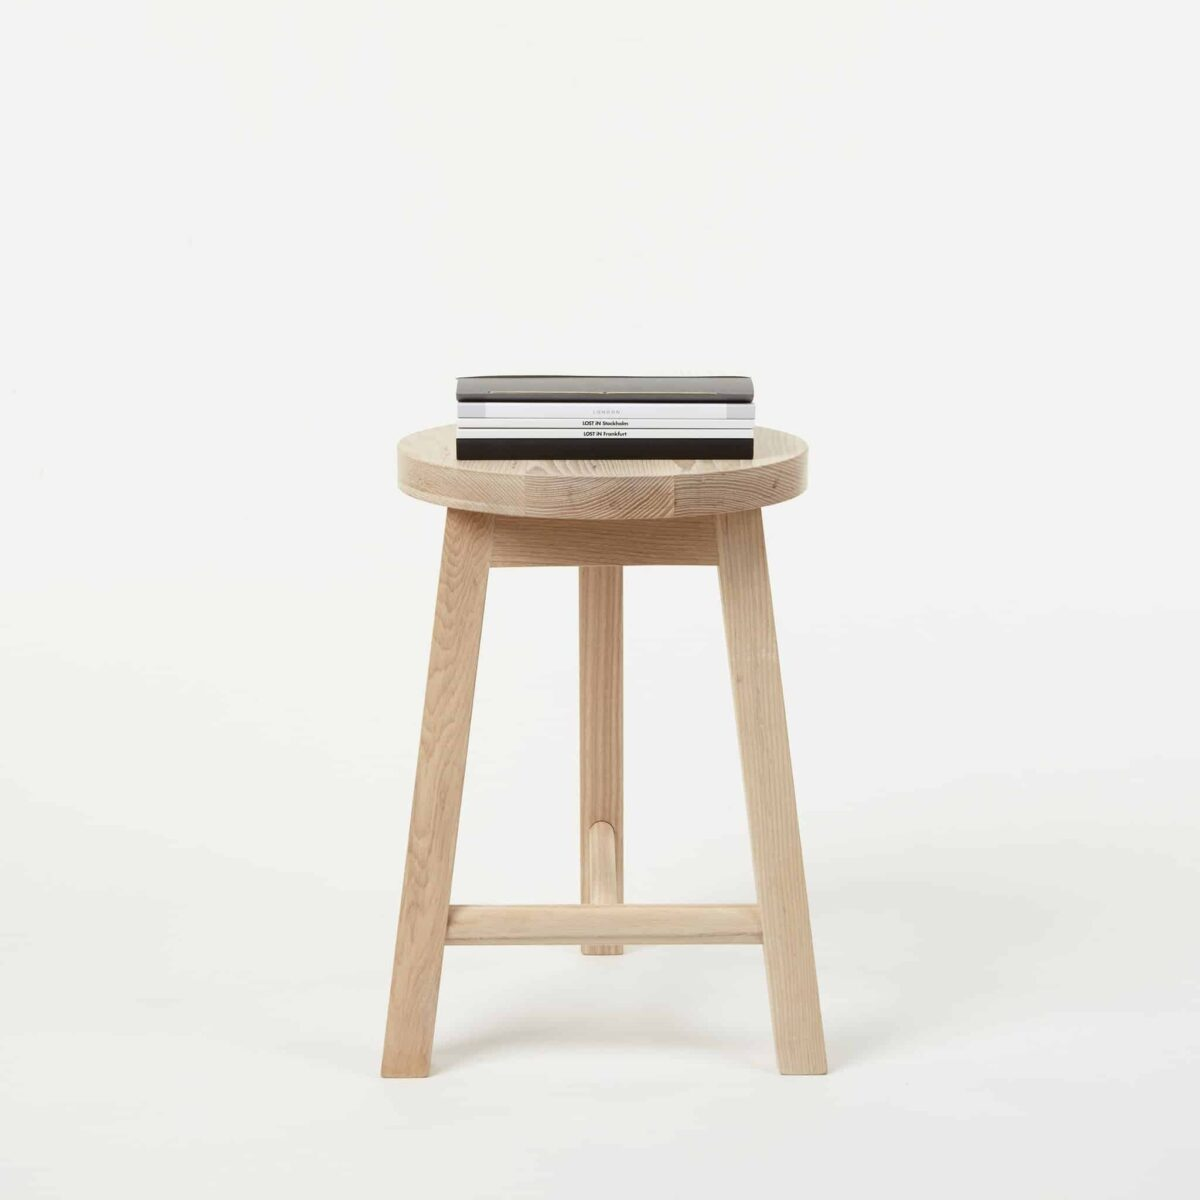 series-two-stool-round-ash-another-country-008